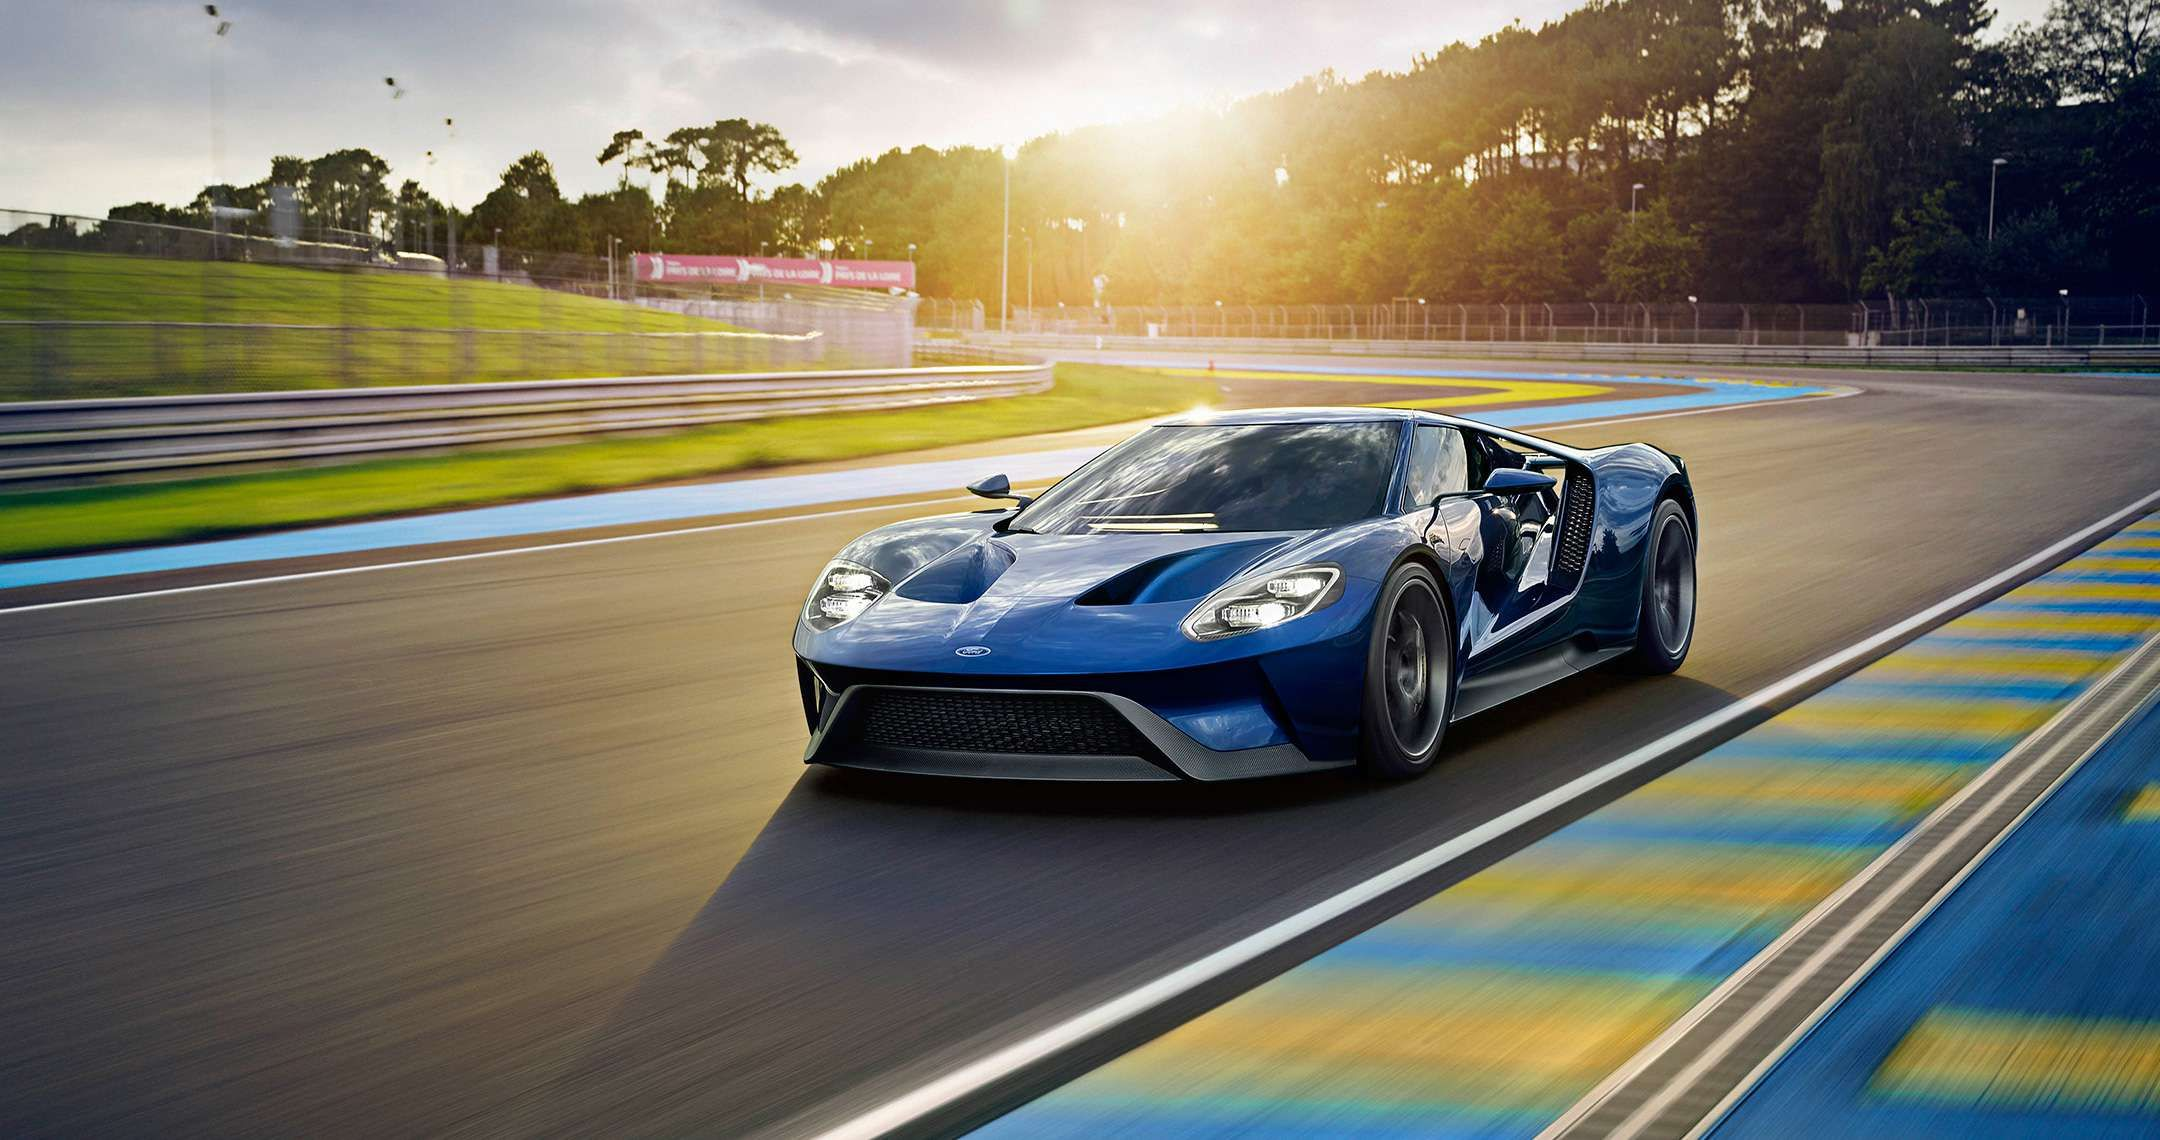 Silde Banner Ford Gt Ford Motor Company Fond Ecran Voiture